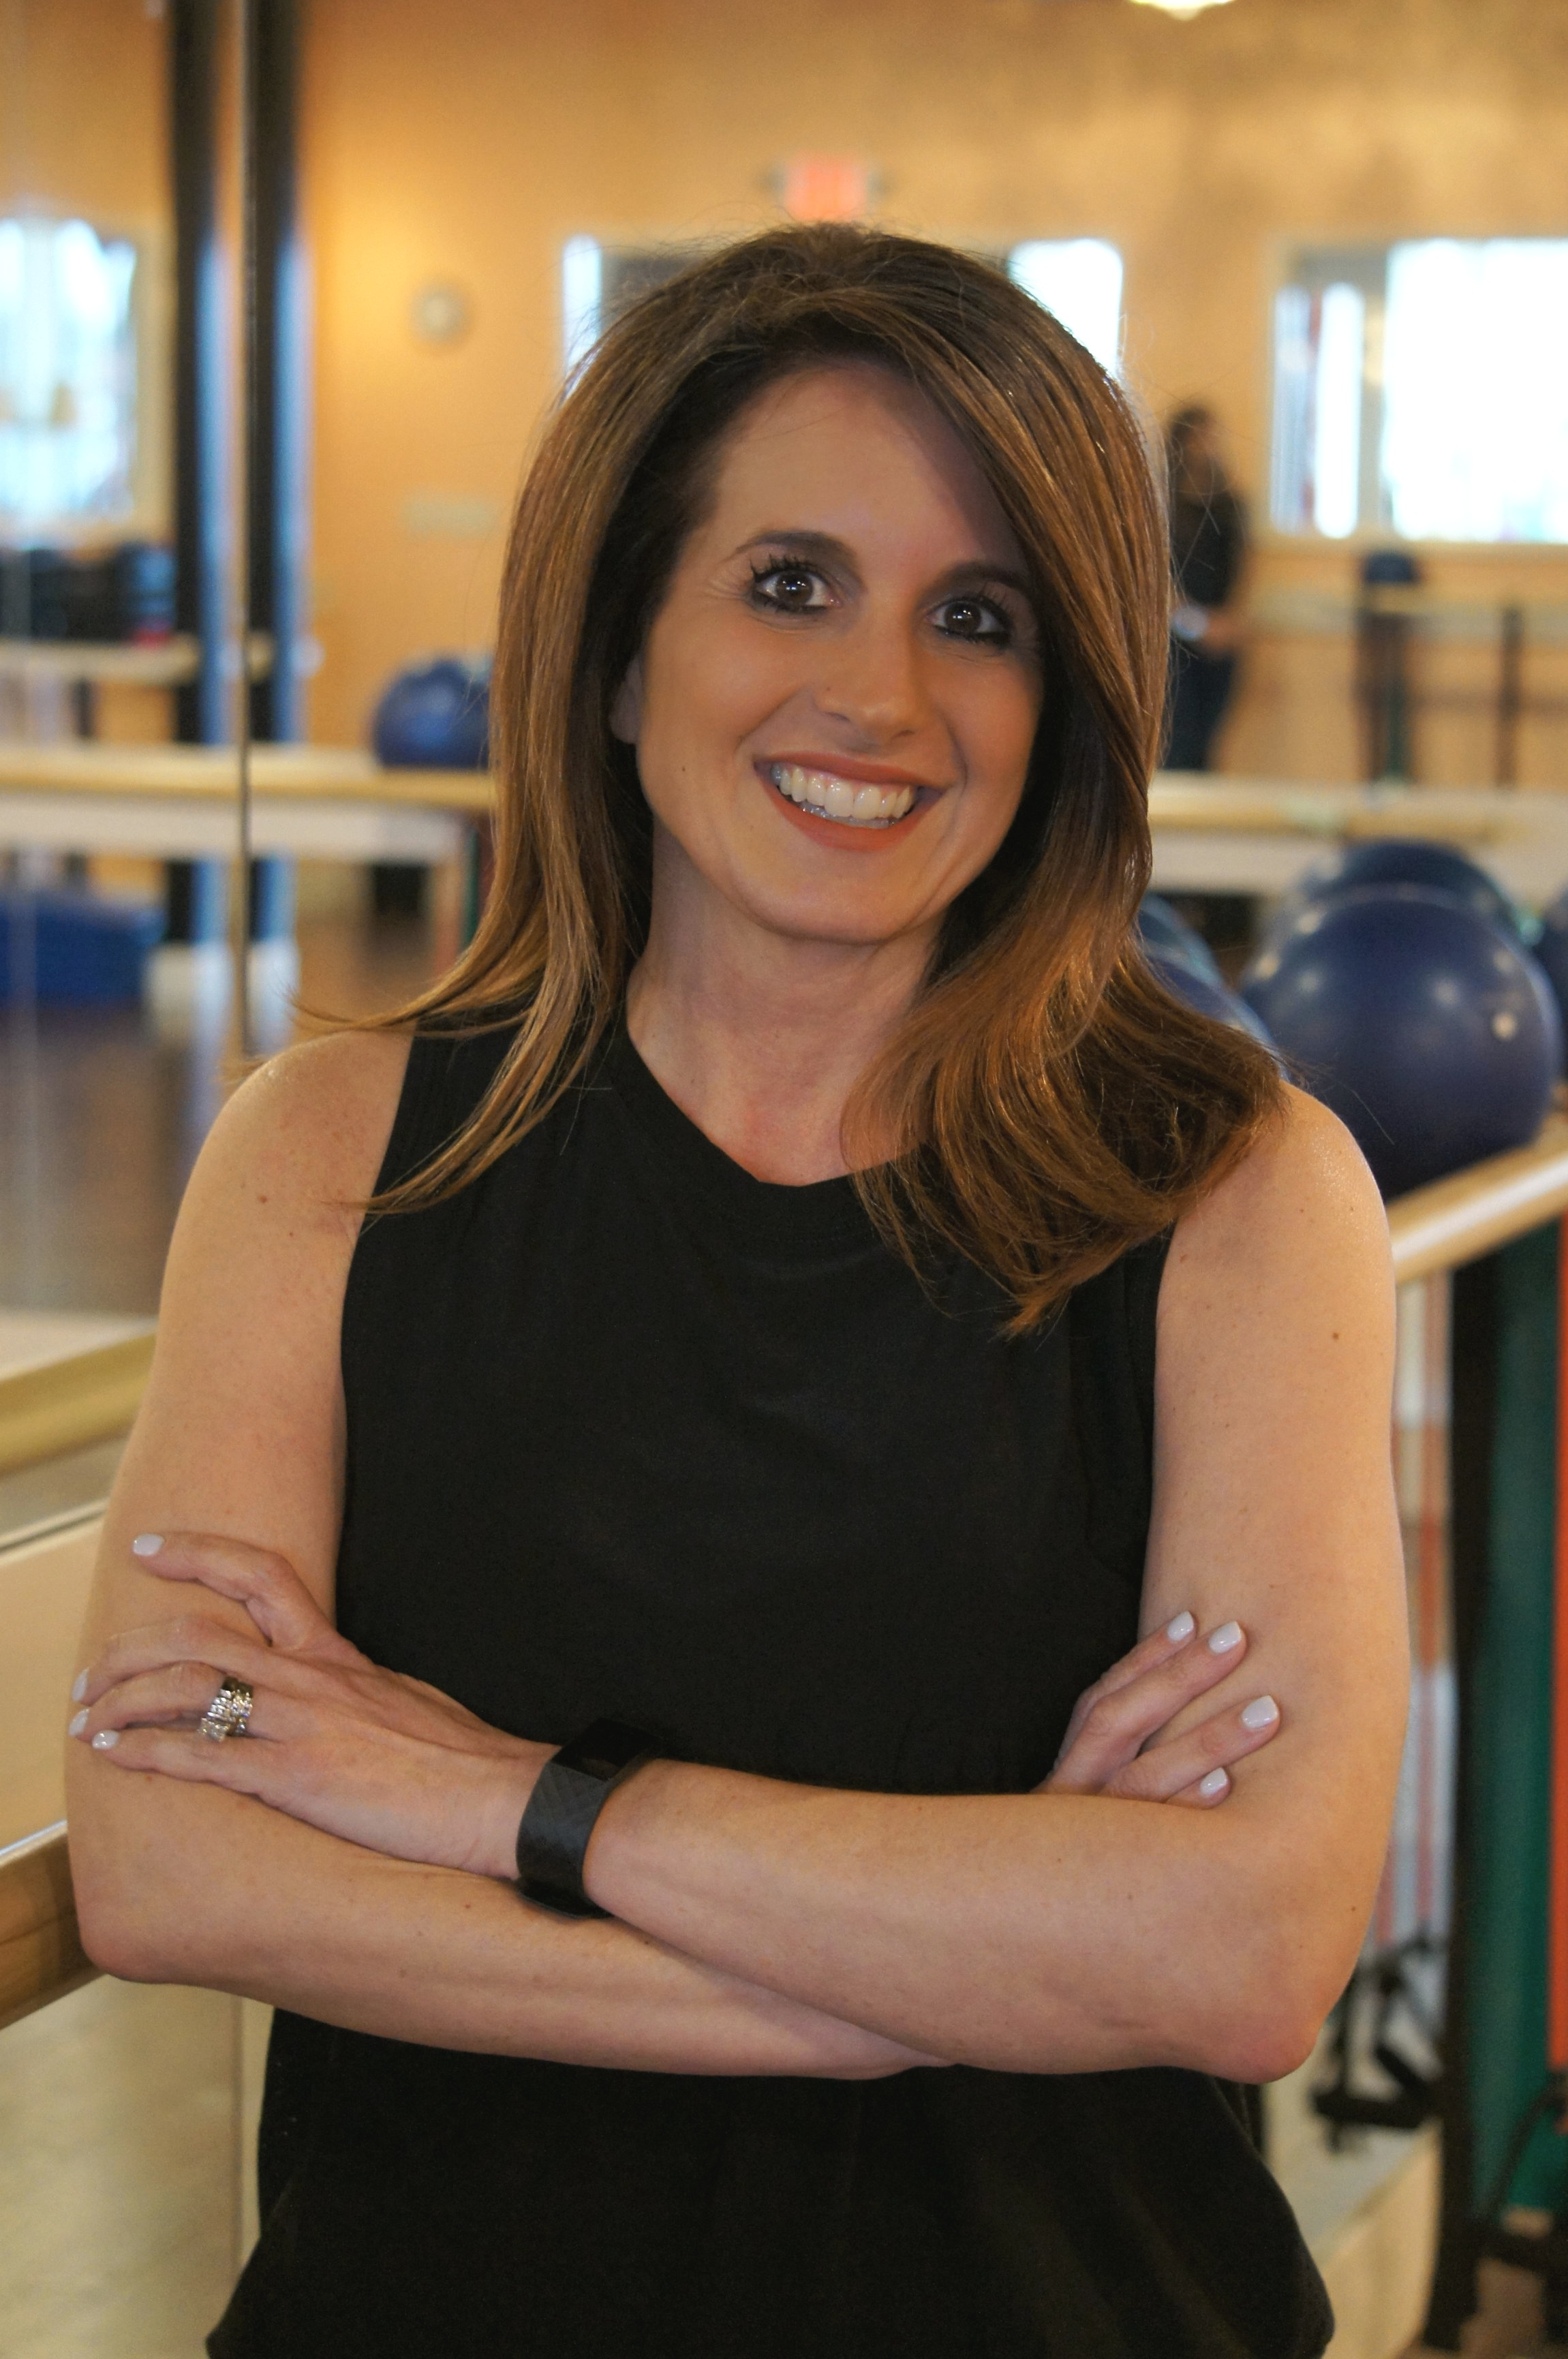 Lana Carrino // Instructor  I began my fitness instructor journey over a decade ago. I love helping people look and feel their best. I am a Human Resources Director by day. In my free time, I love to spend time with my family, read a good book or gossip magazine and watch General Hospital!